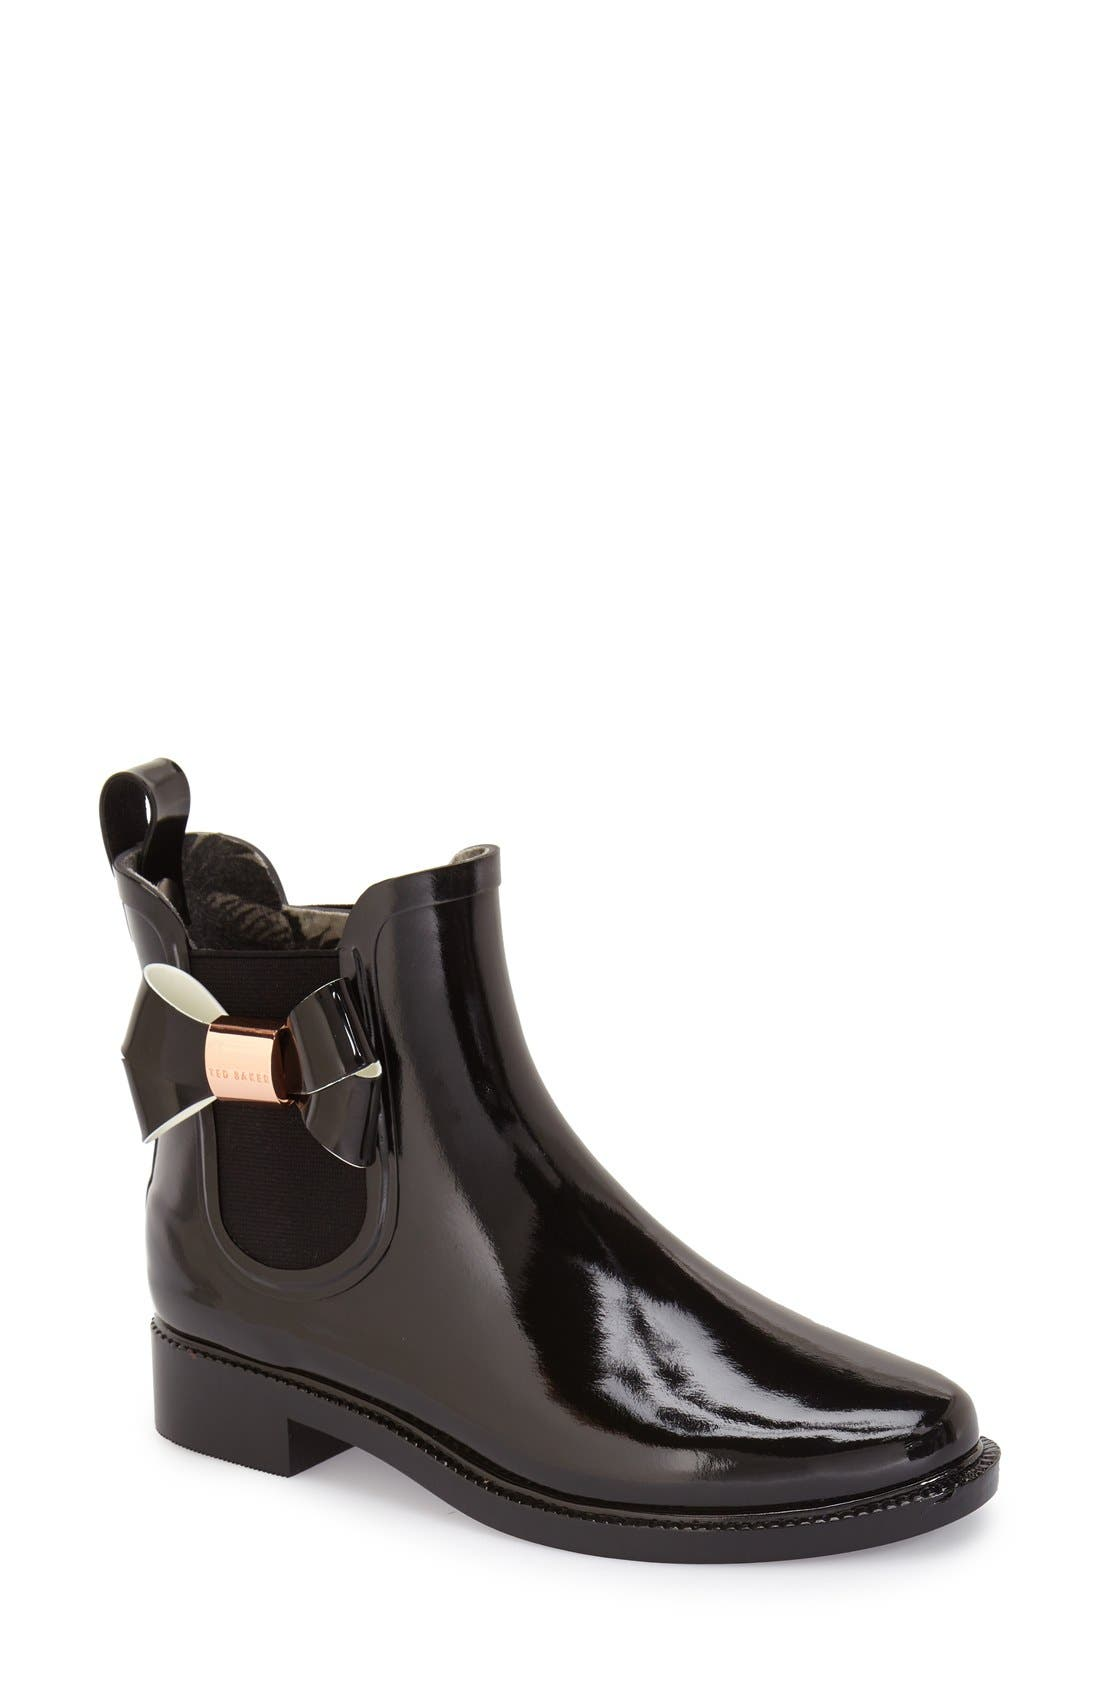 Alternate Image 1 Selected - Ted Baker London 'Erlfyn' Rain Bootie (Women)